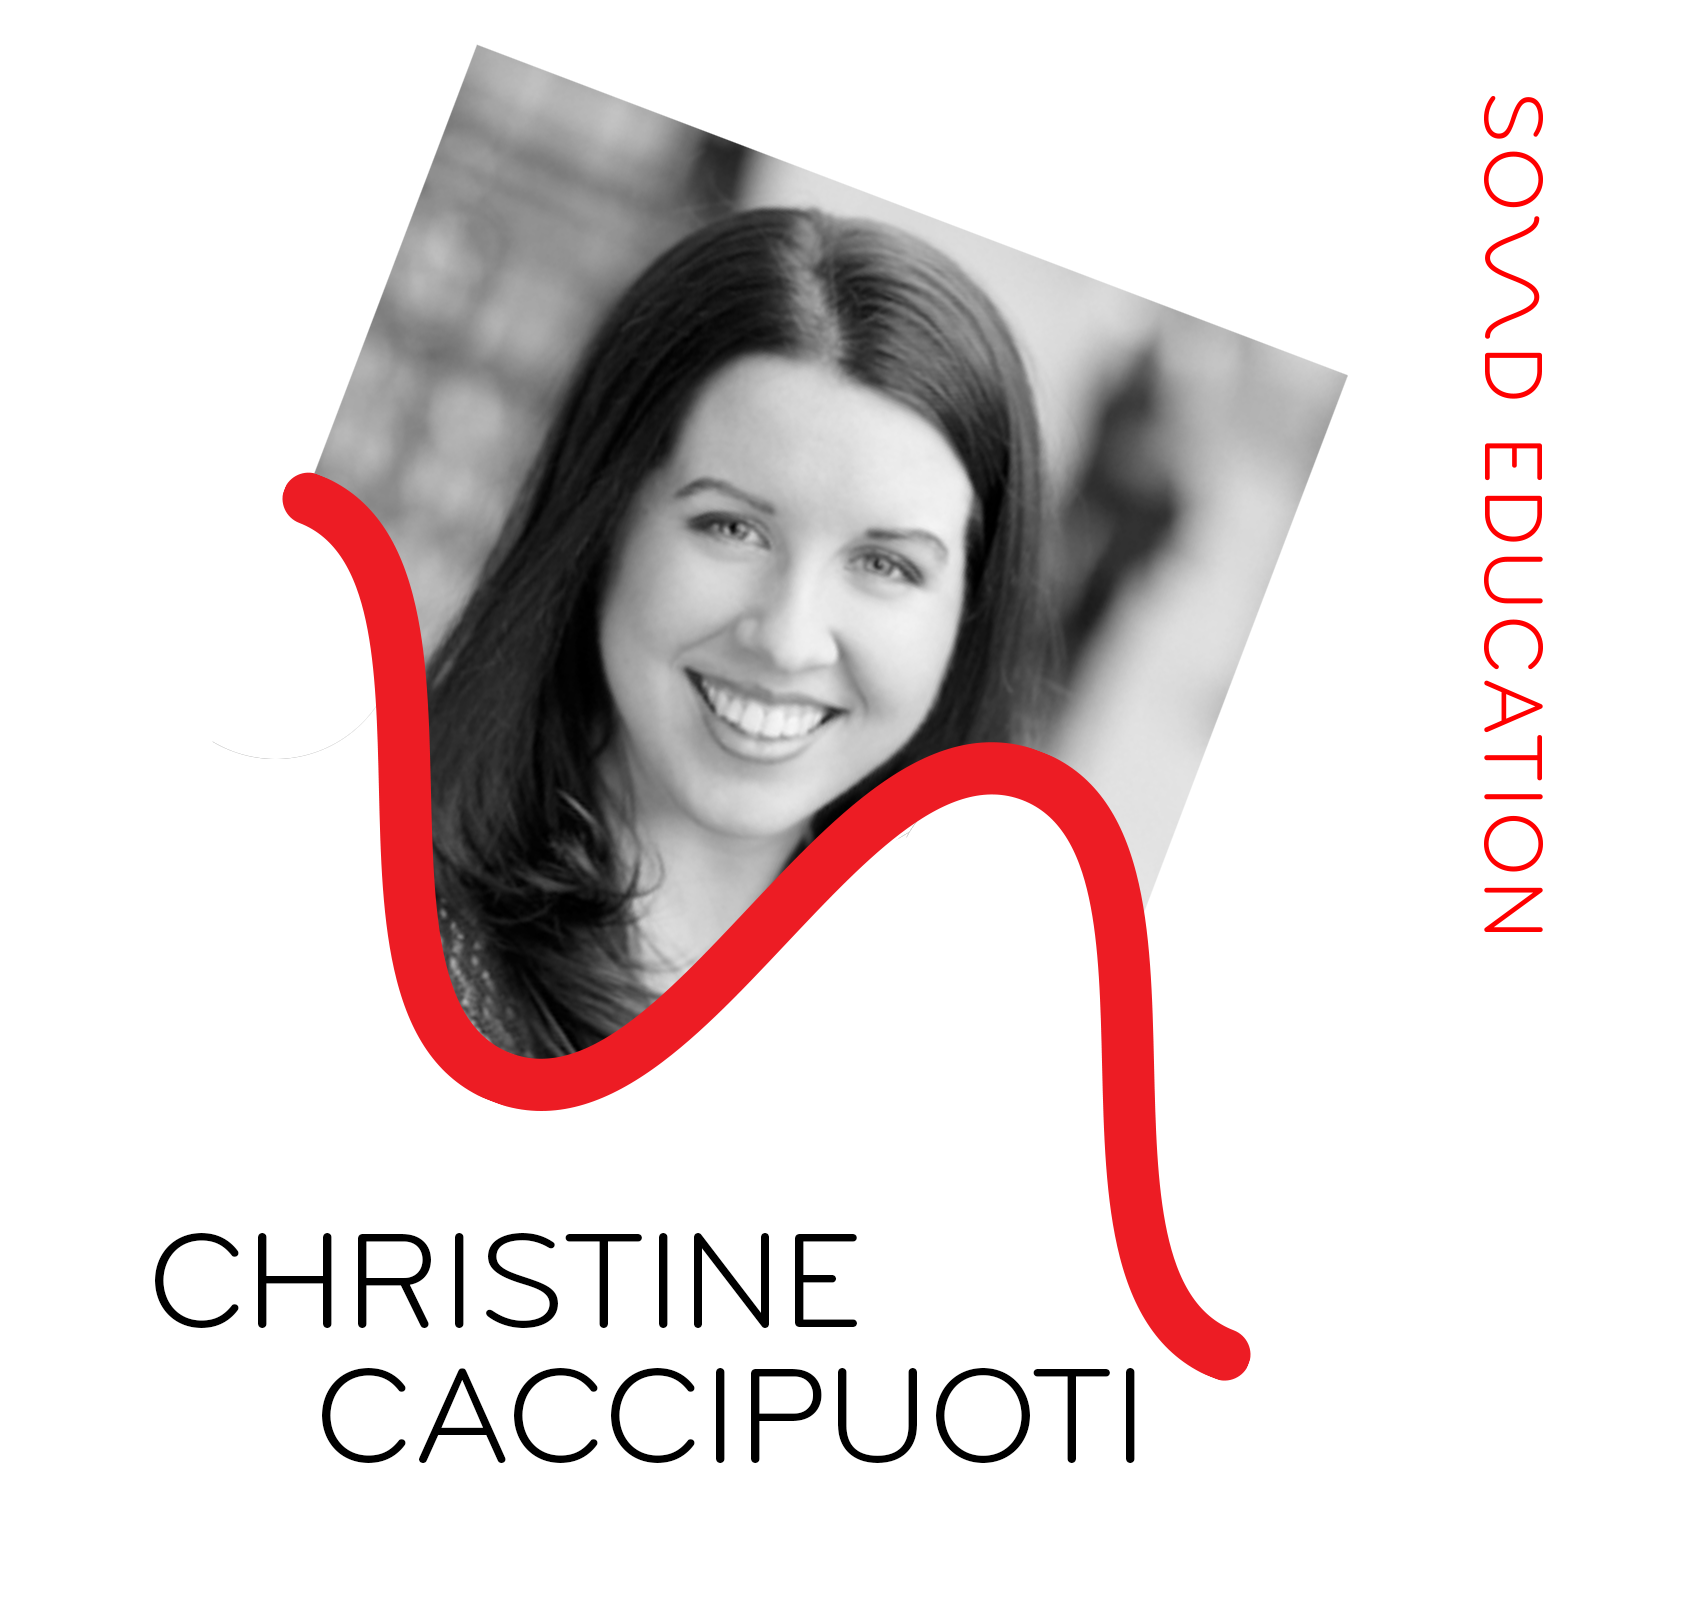 caccipuoti_christine.png